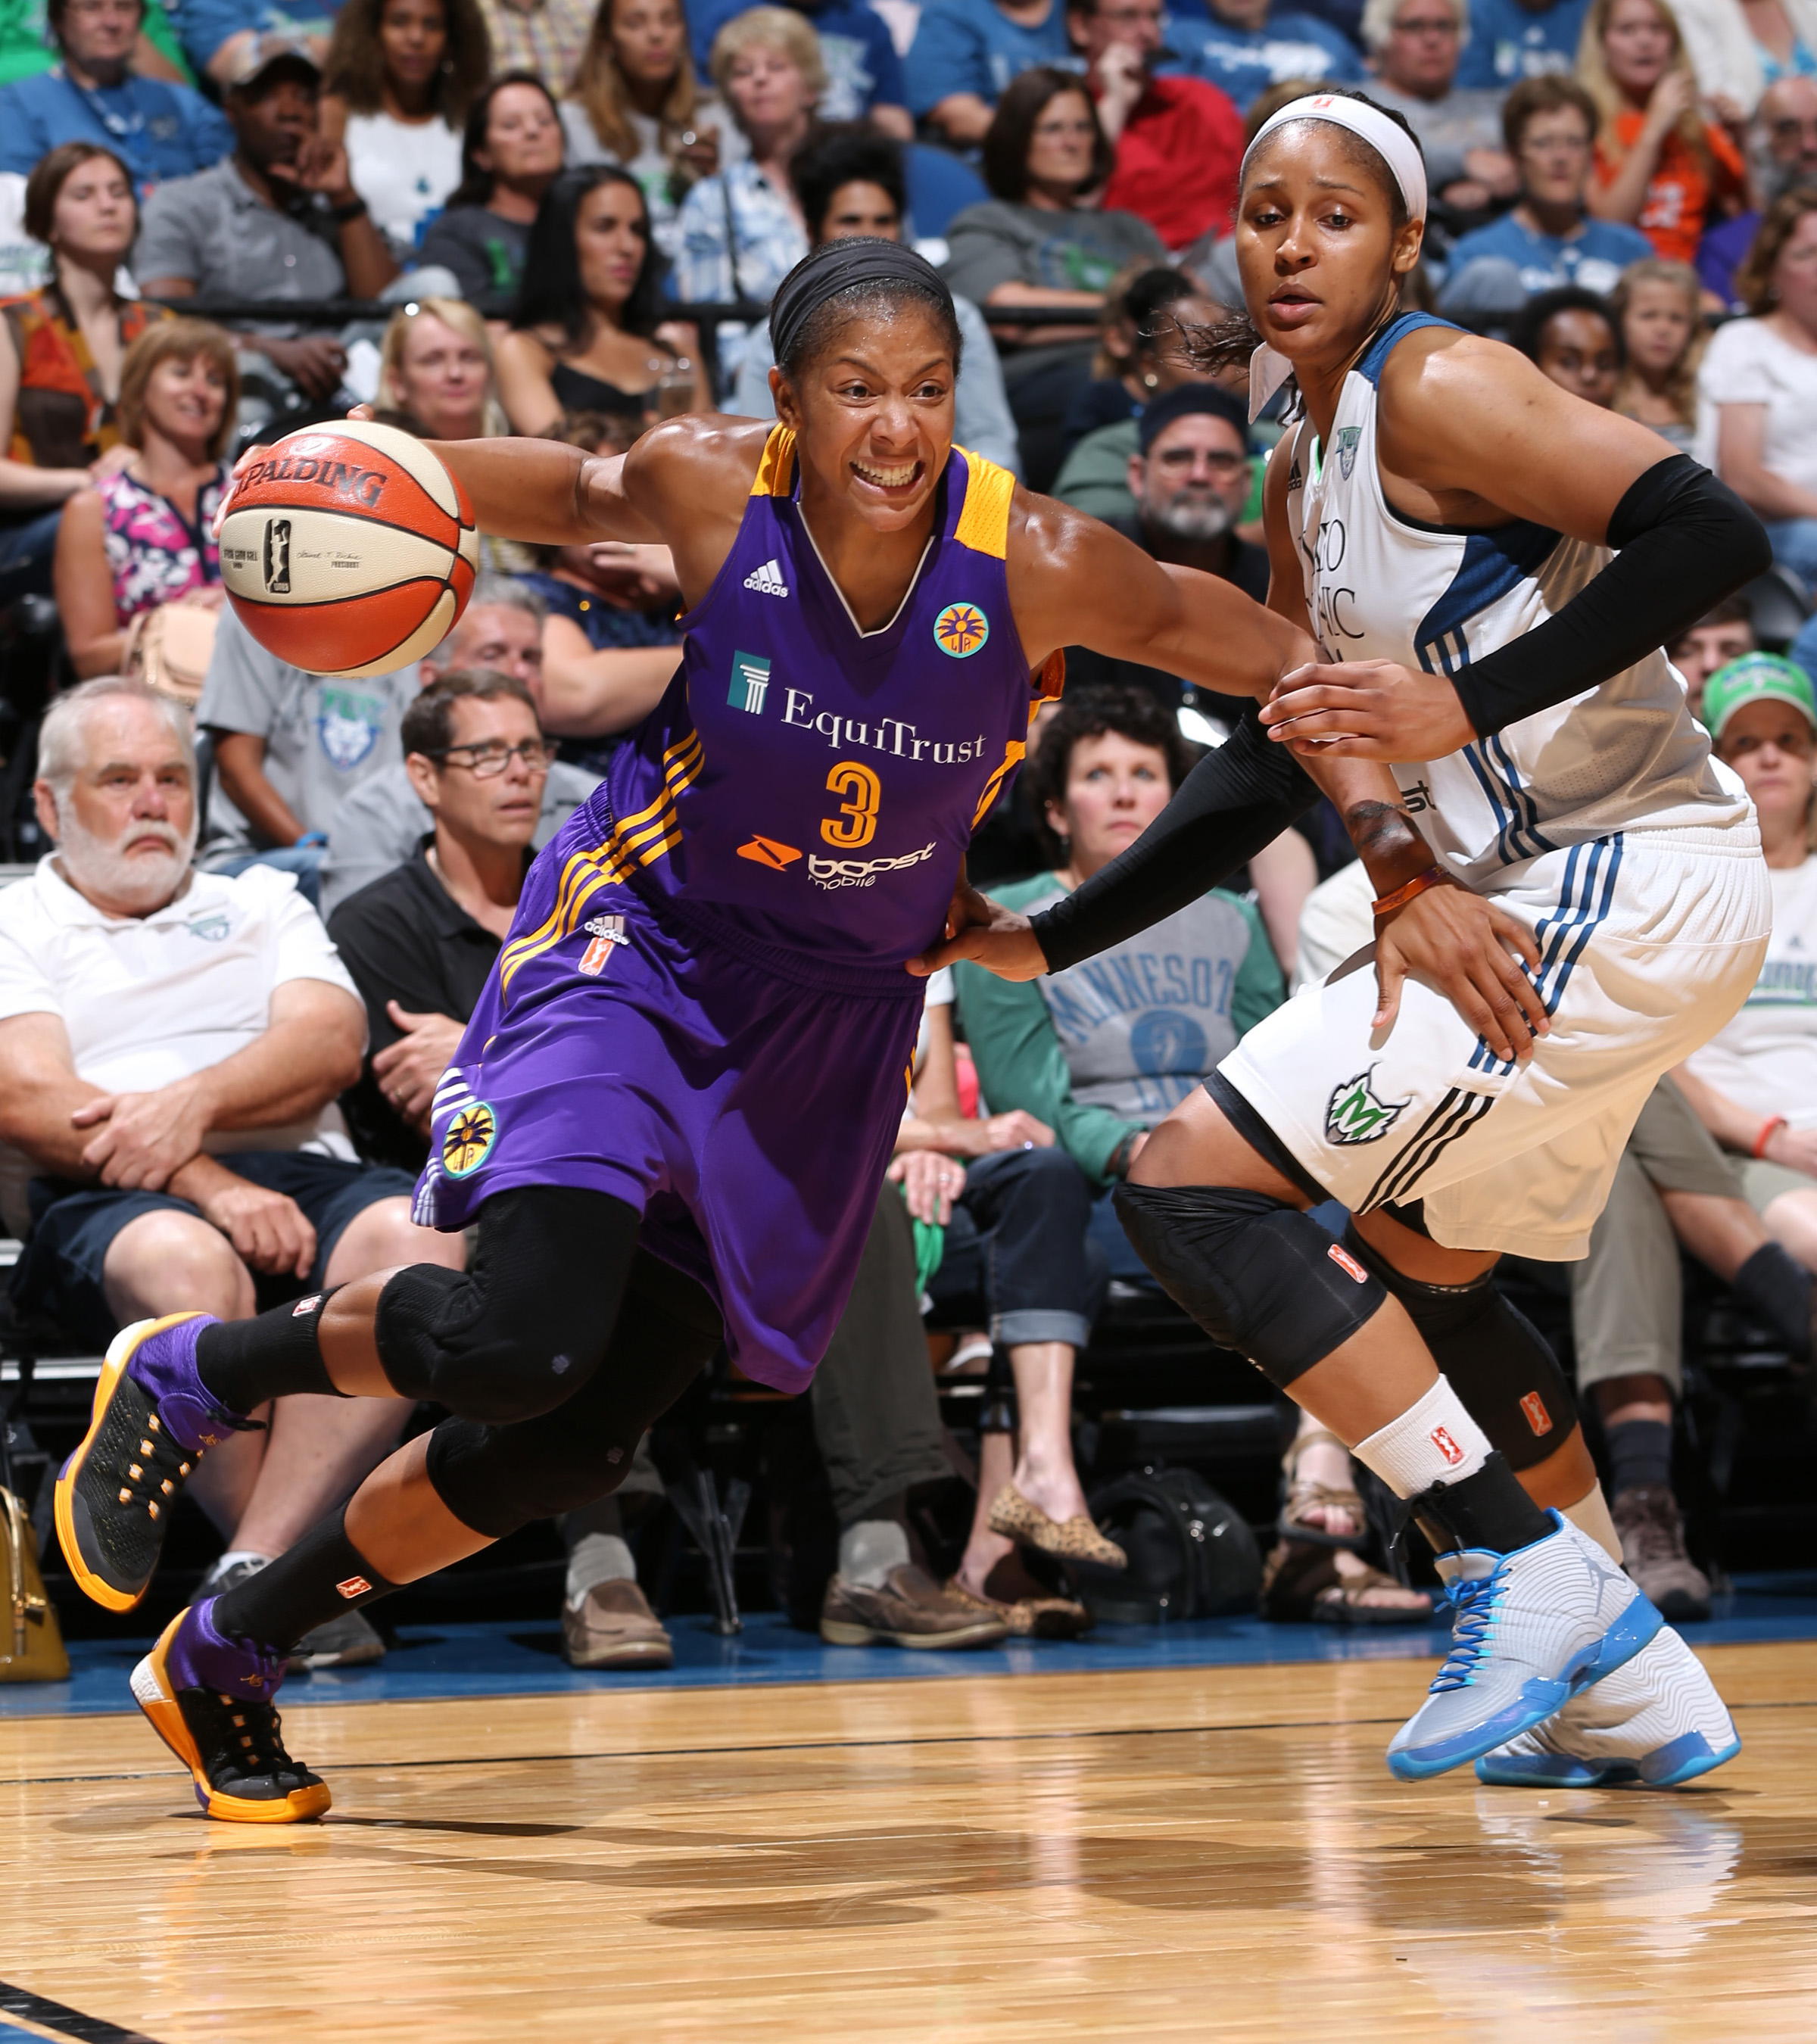 Sparks forward Candace Parker made her season deubt on July 29 after sitting out the first half of the season to rest. Parker played well, finishing just shy of a triple-double: 12 points, seven rebounds and nine assists in a Sparks' loss.